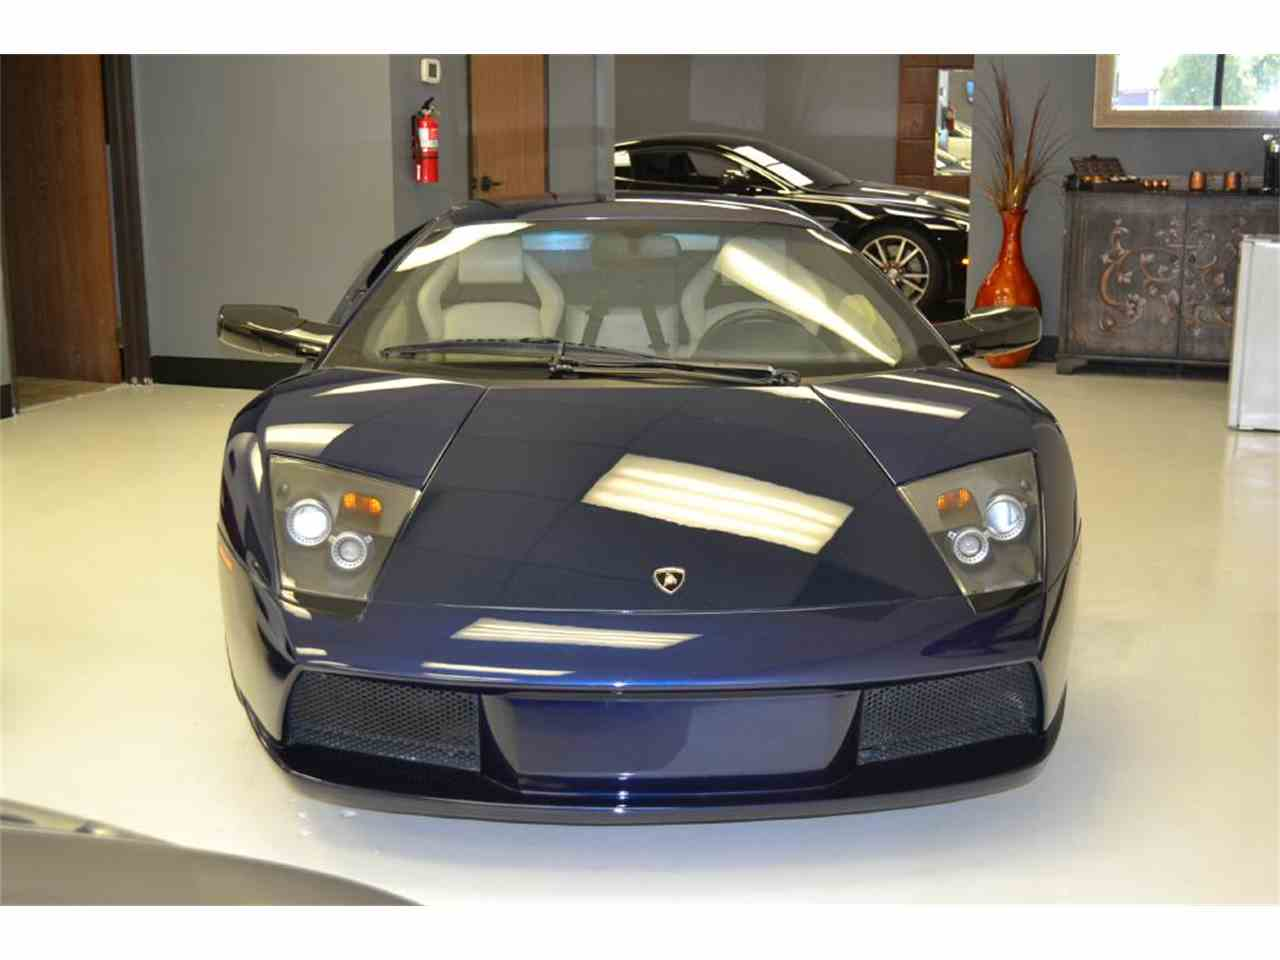 Large Picture of '04 Murcielago located in Temecula California - $110,000.00 Offered by Fortunauto 13 LLC - LVJ1